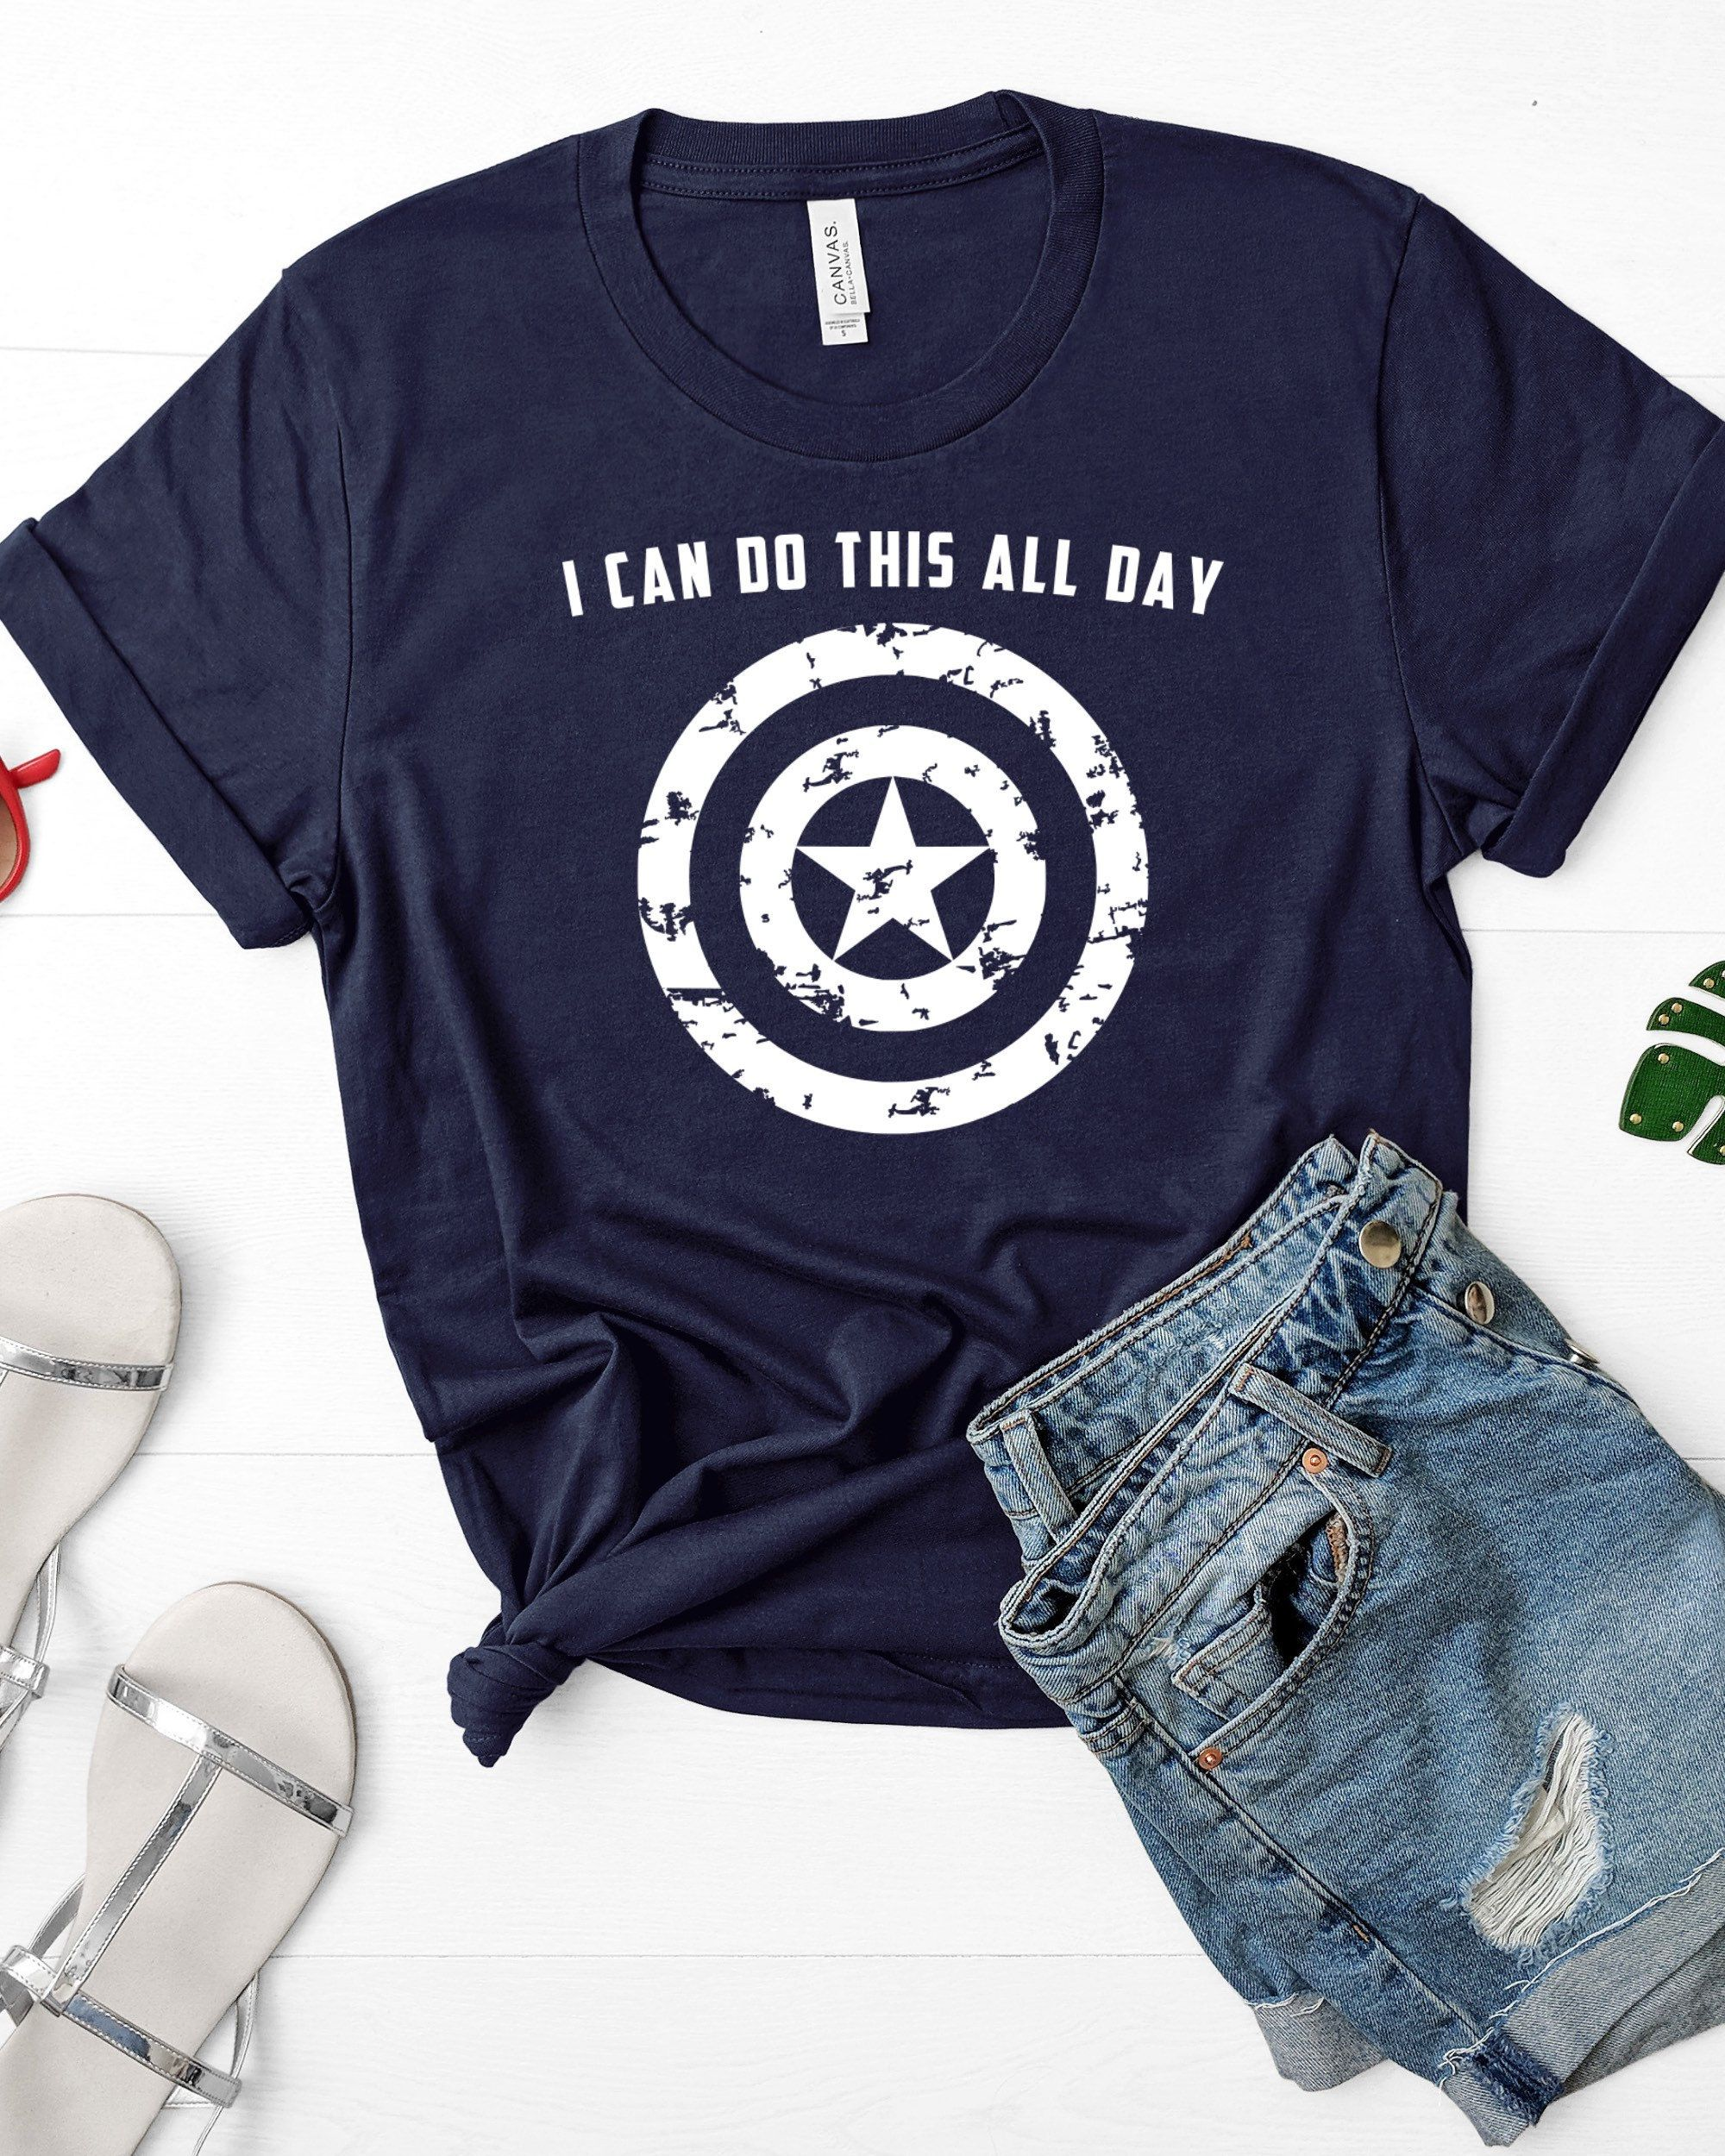 I Can Do This All Day American Shield Nerdy Short Sleeve T-Shirt Tees Tshirts